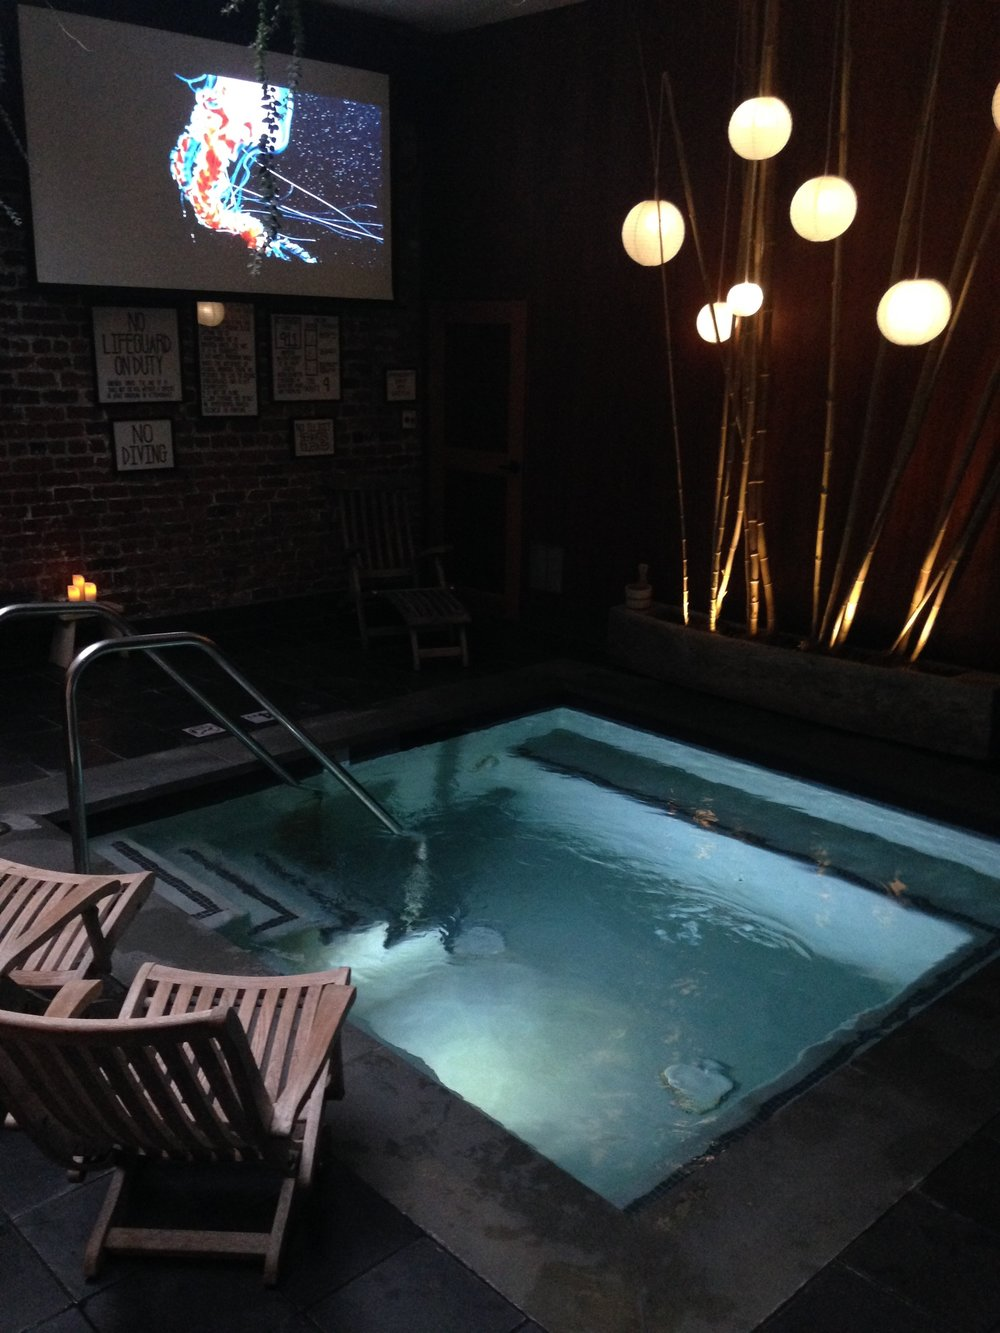 Movie Night at Onsen communal bathhouse